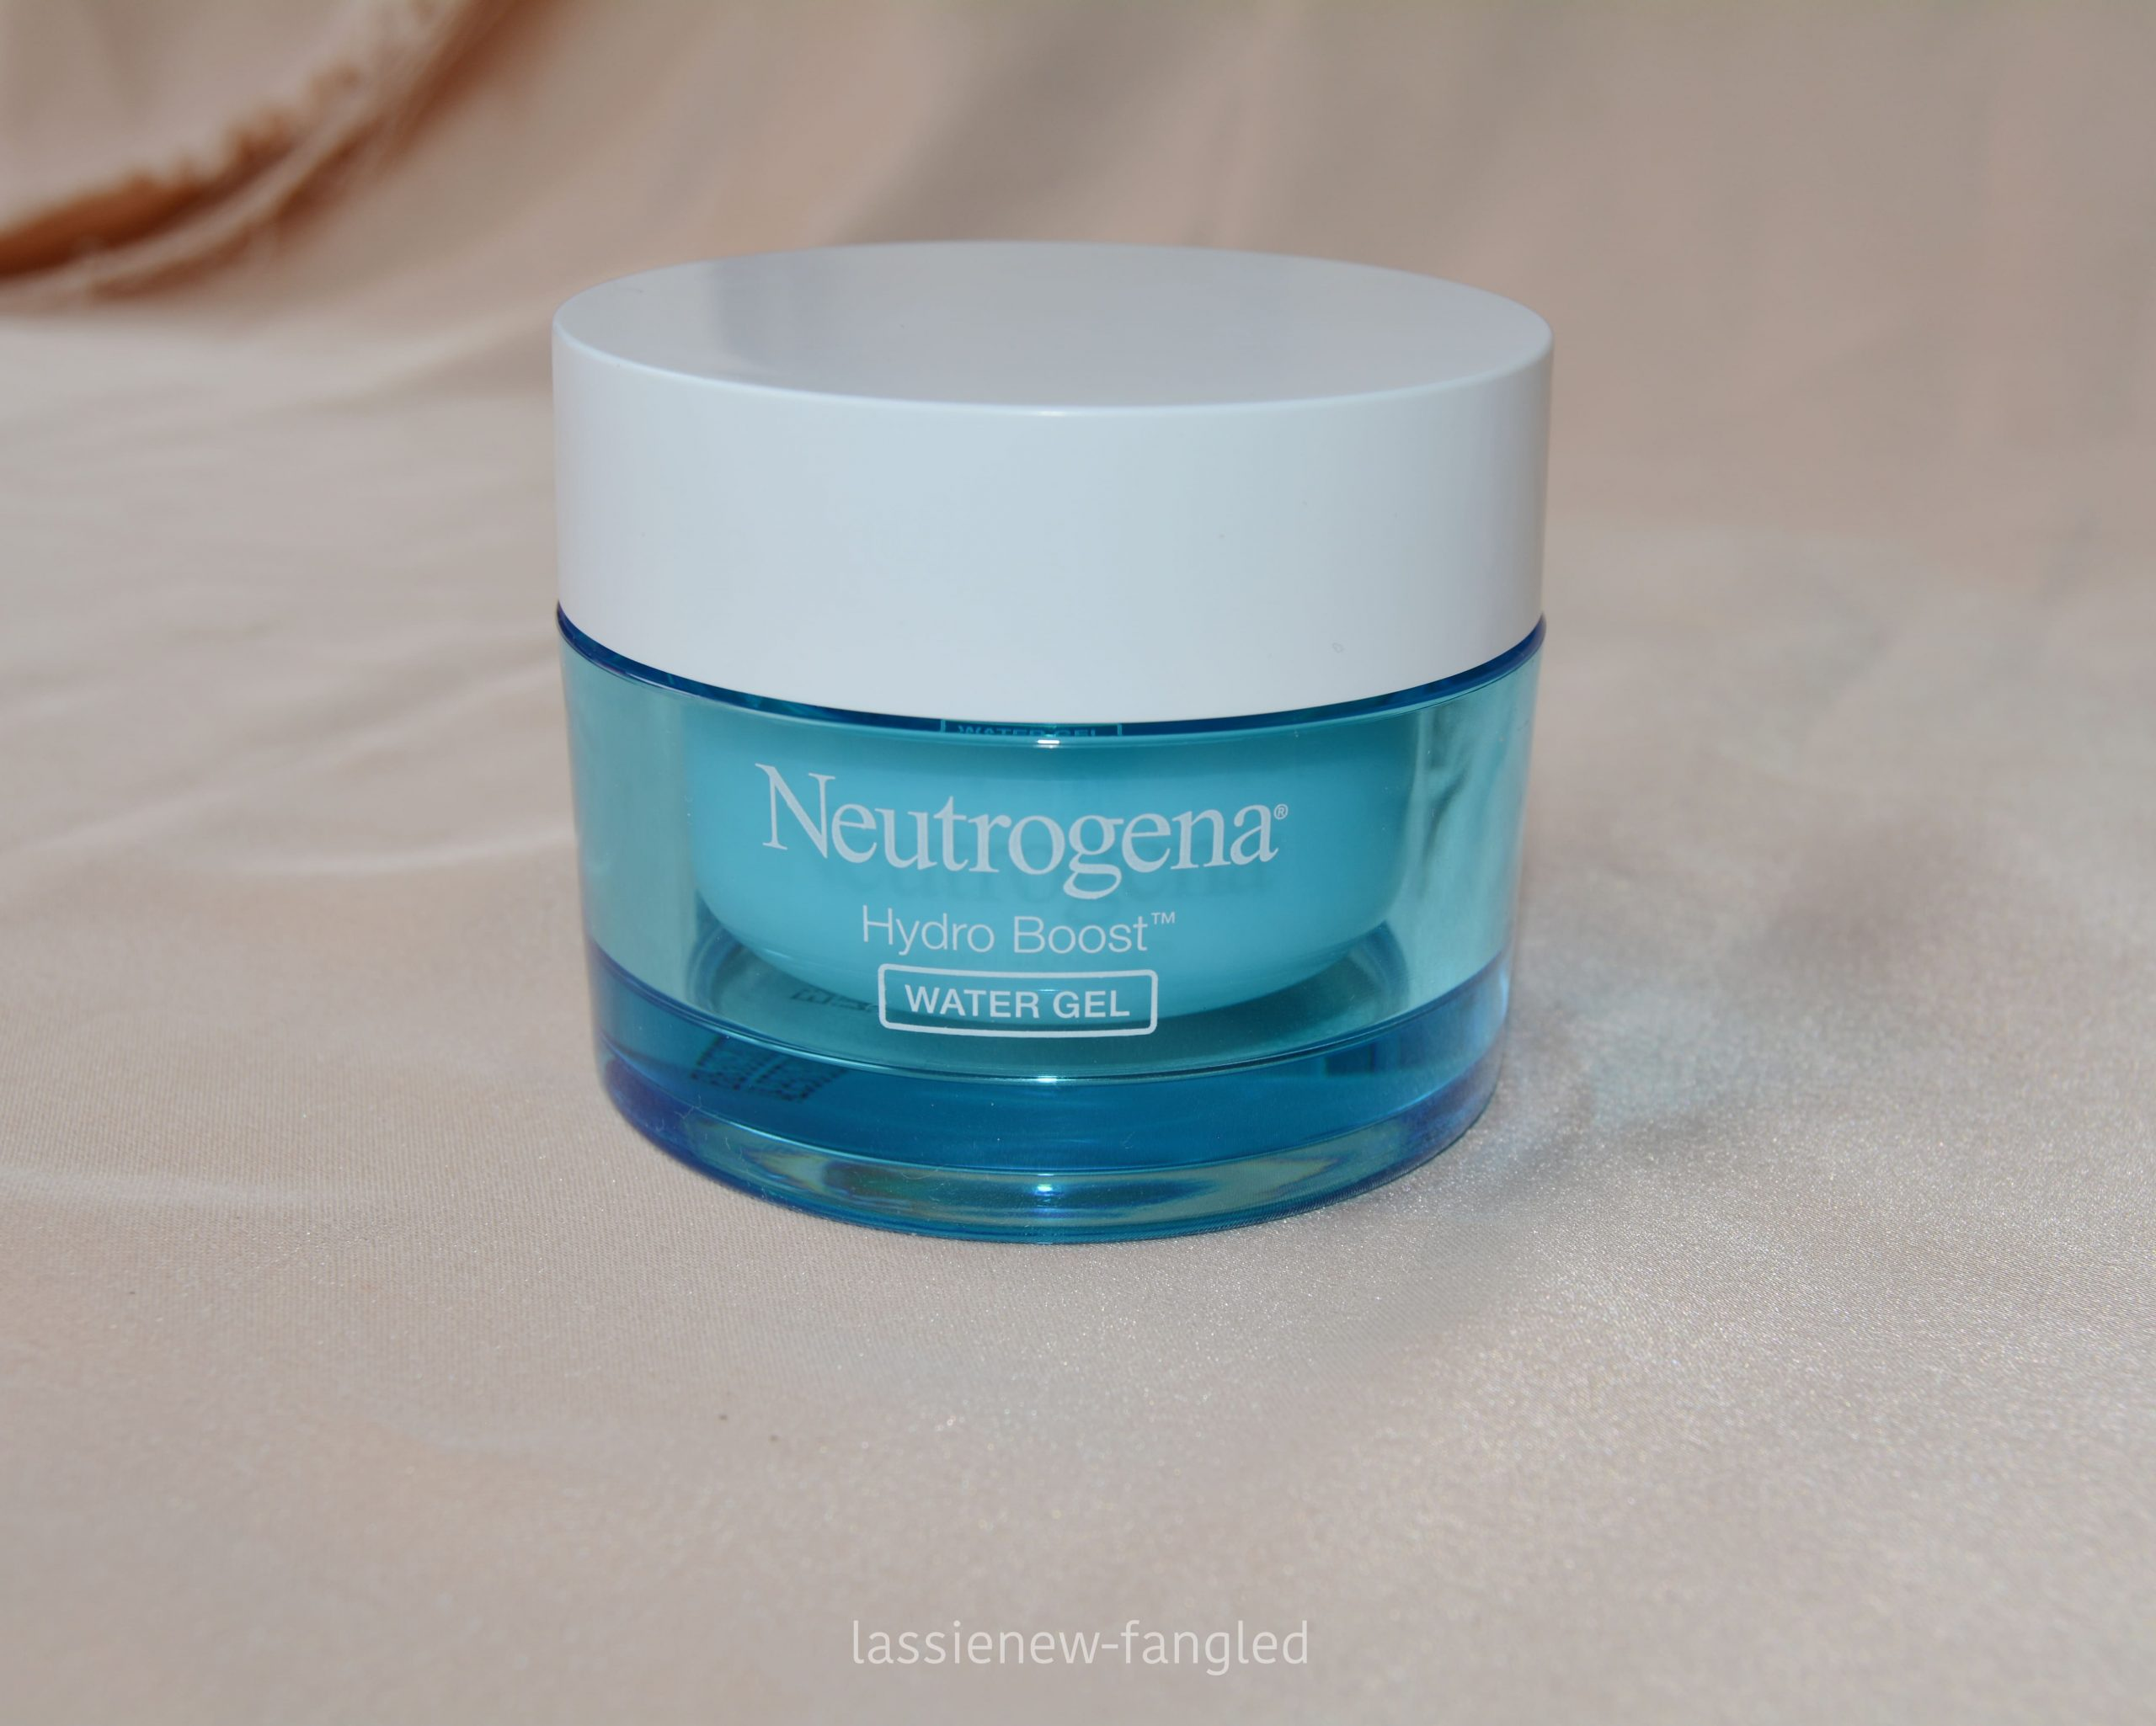 Review Neutrogena Hydro Boost Water Gel , Neutrogena Hydro Boost Water Gel Review , Neutrogena Hydro Boost Water Gel , Review Neutrogena , Neutrogena Review, Neutrogena Water Gel